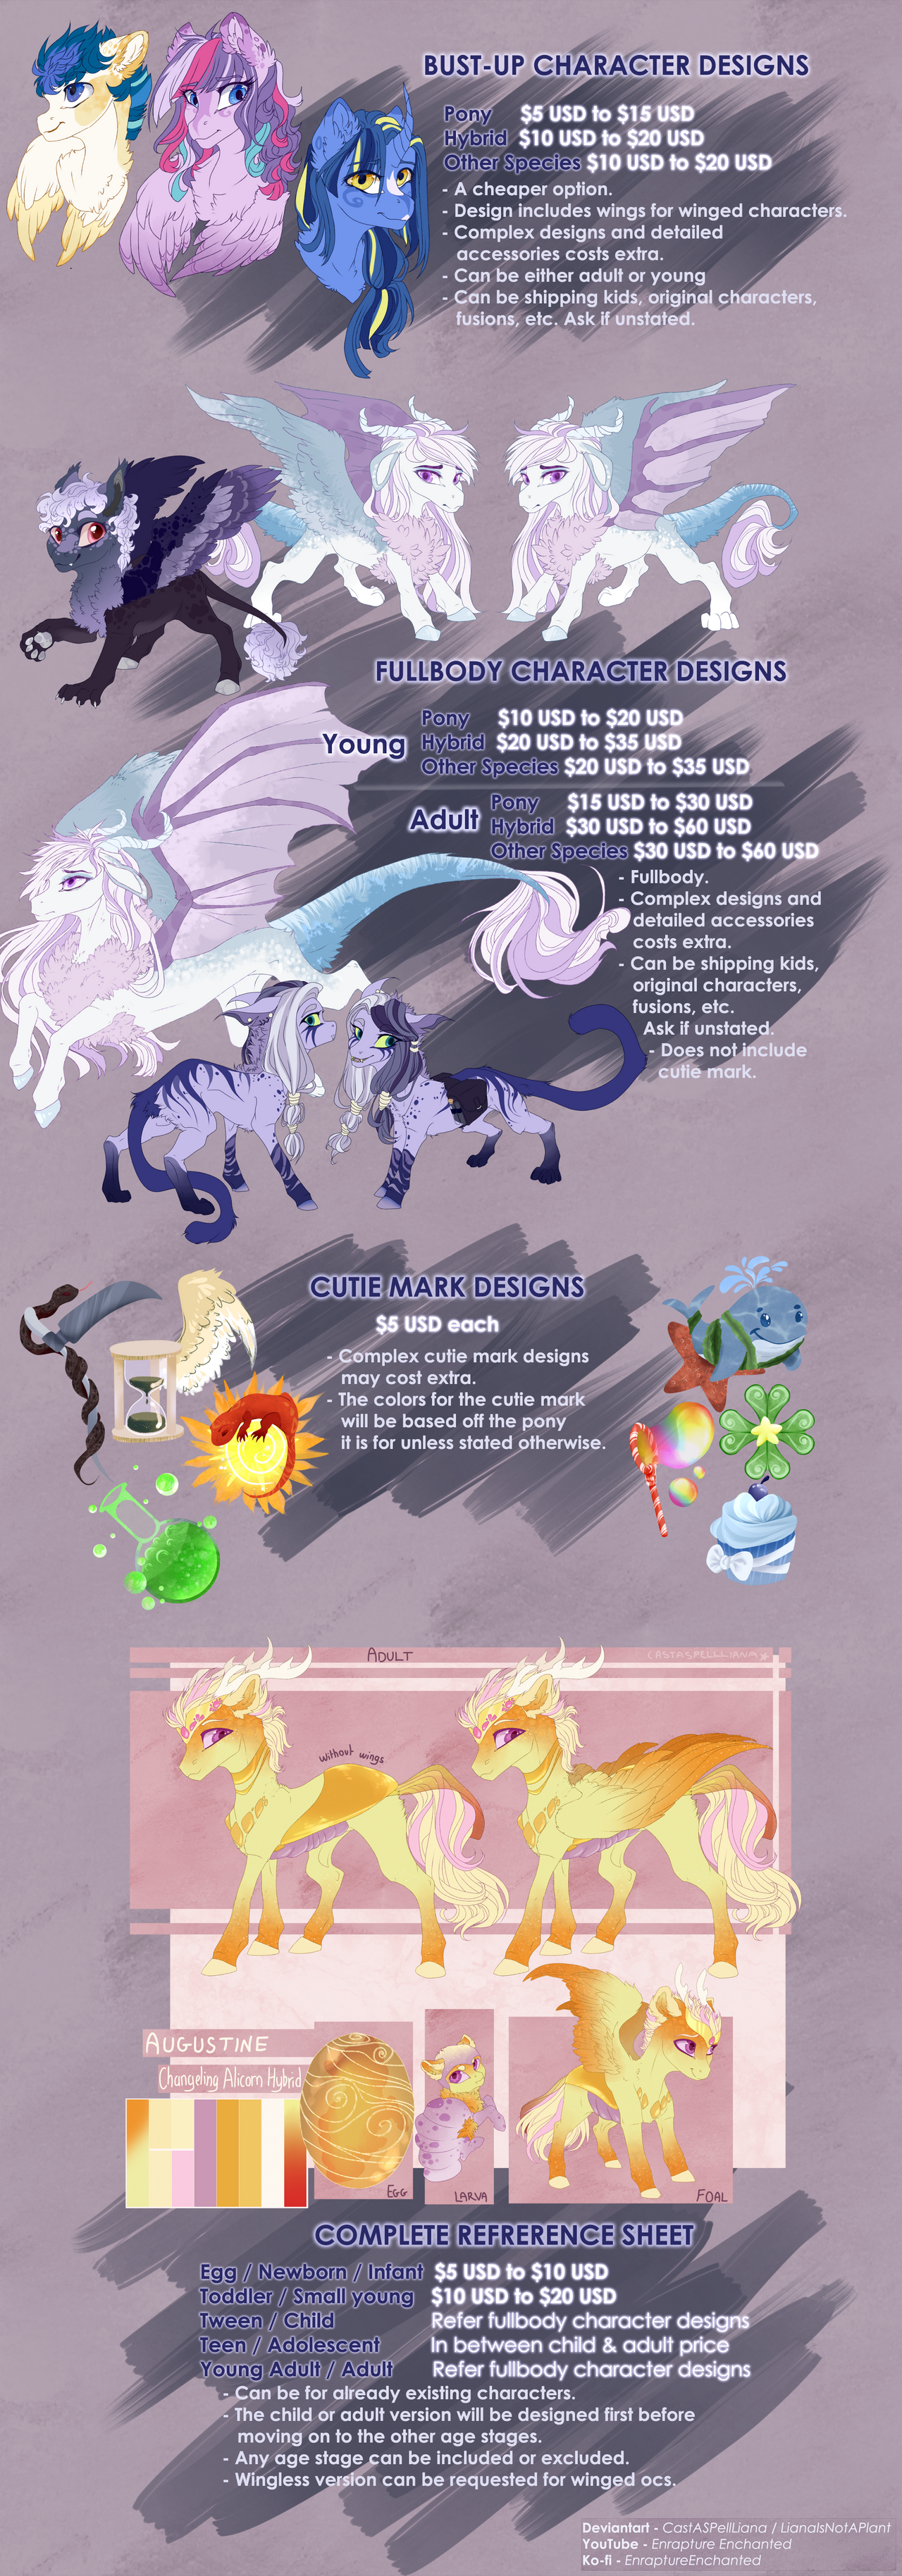 Custom Design Commission Price Guide [[CLOSED]]